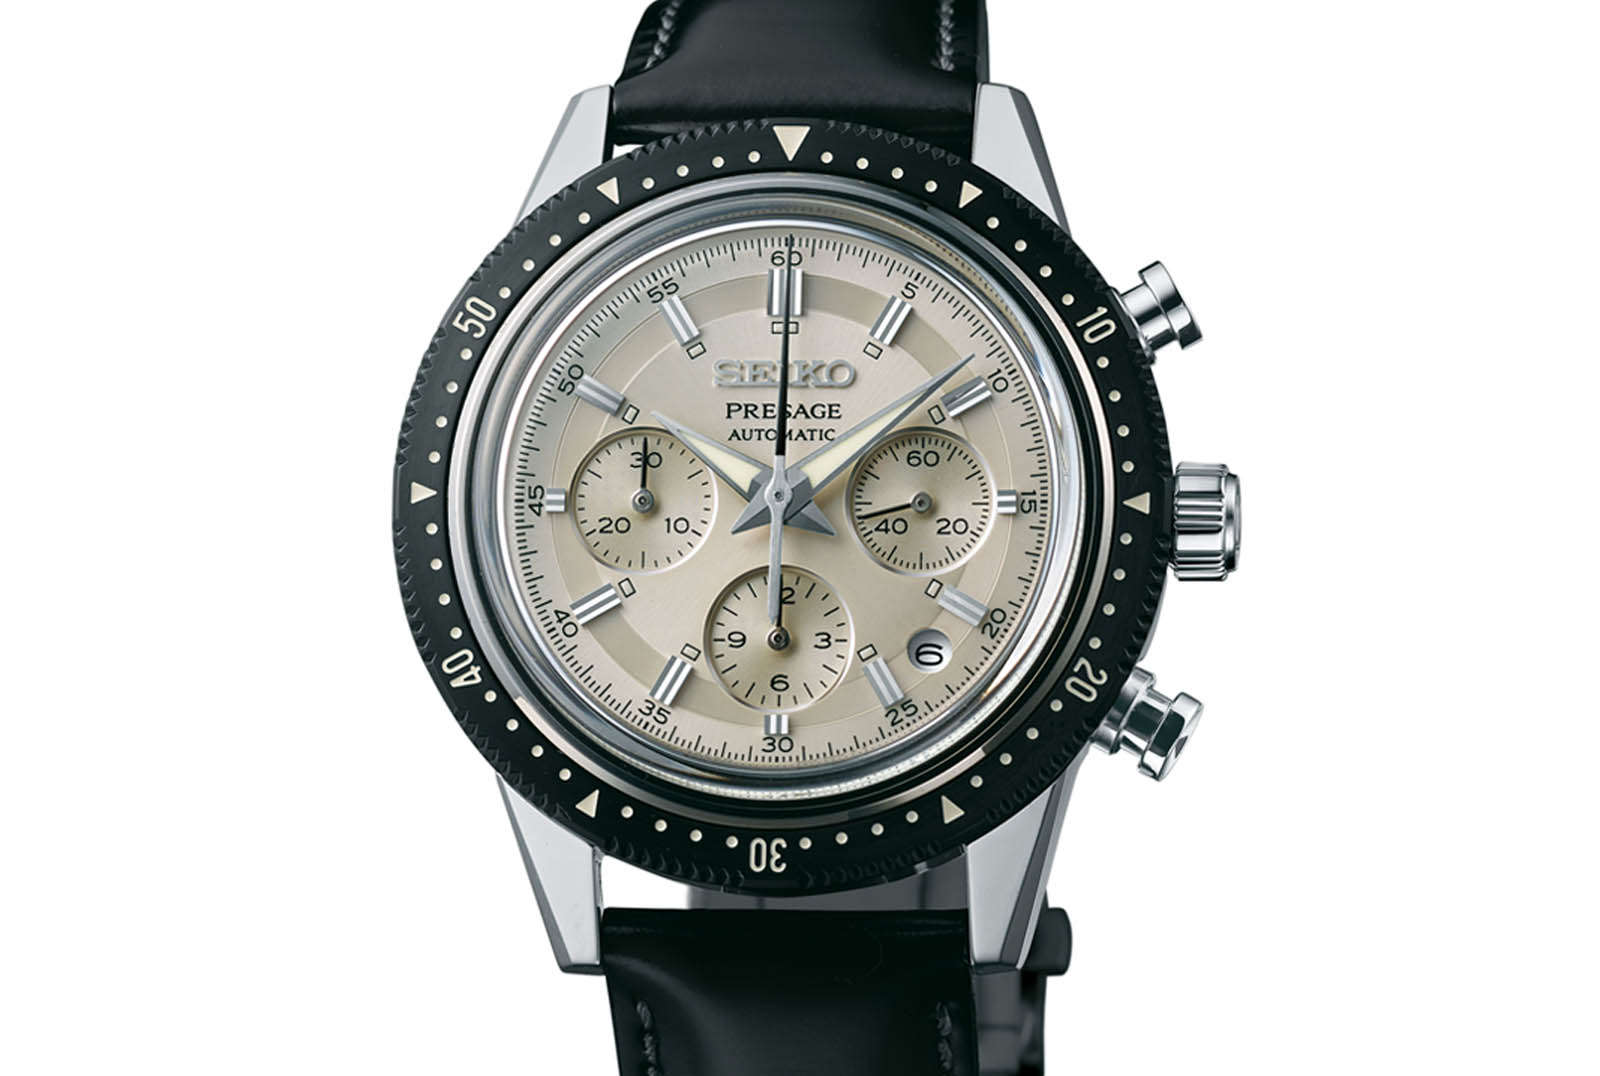 Seiko_Presage Chronograph 50th Anniversary Limited Edition ref. SRQ031